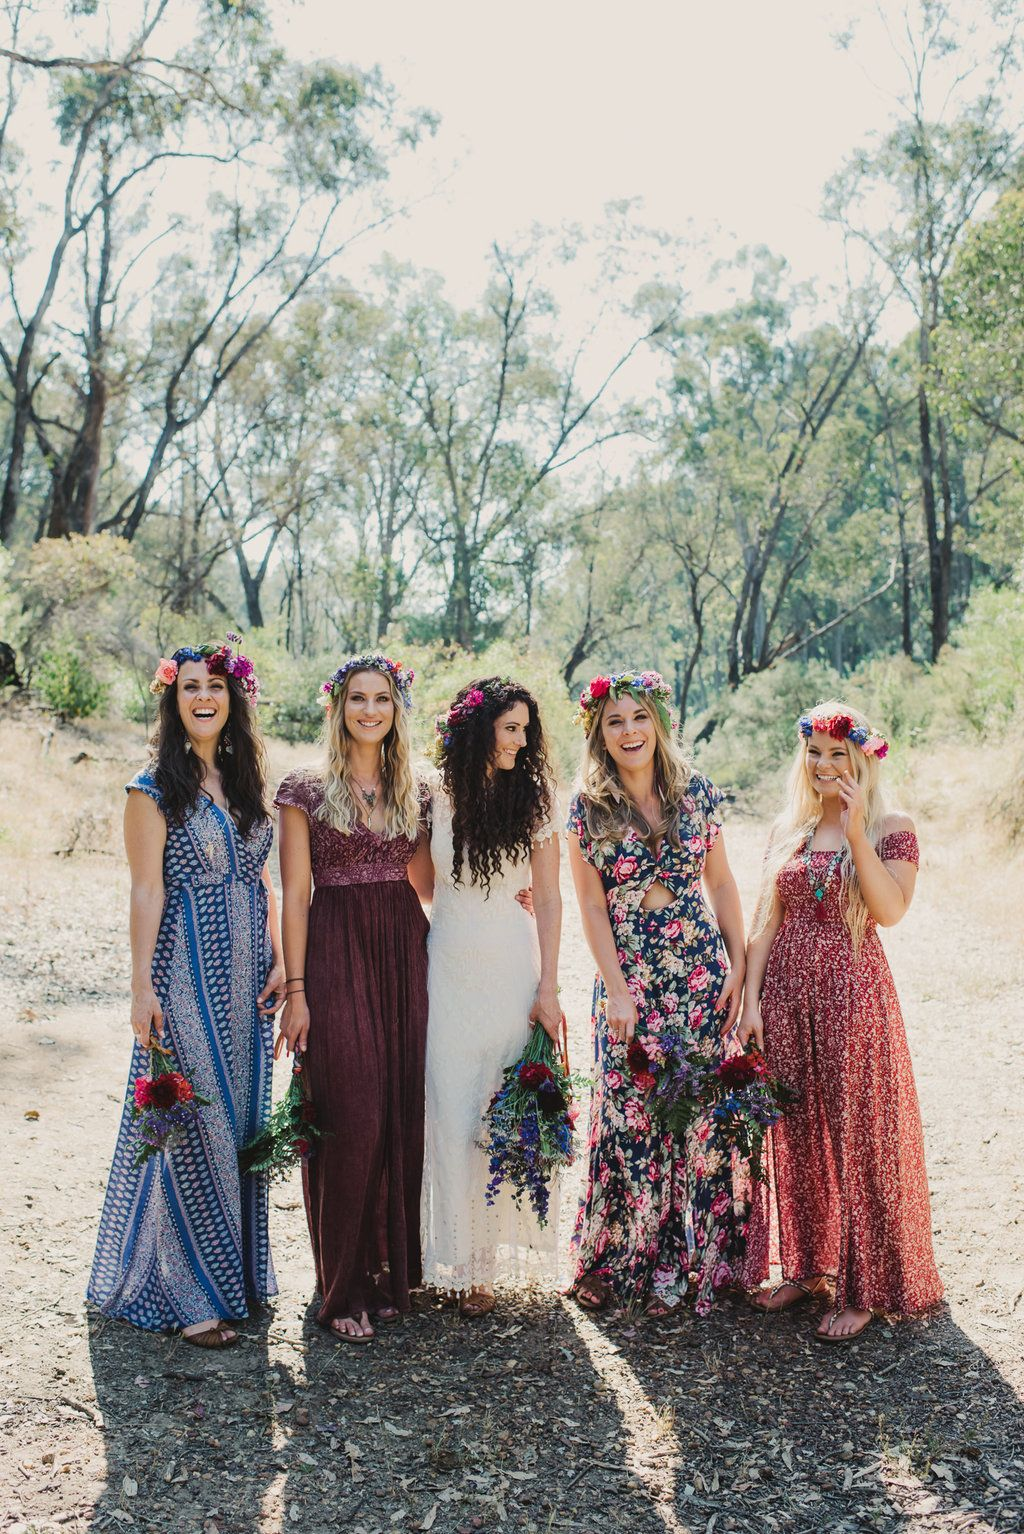 ee6b6dd86e6 Treeblog  A DIY Boho Wedding More. 19 Bridal Parties Who Perfected The  Mismatched Dress Trend